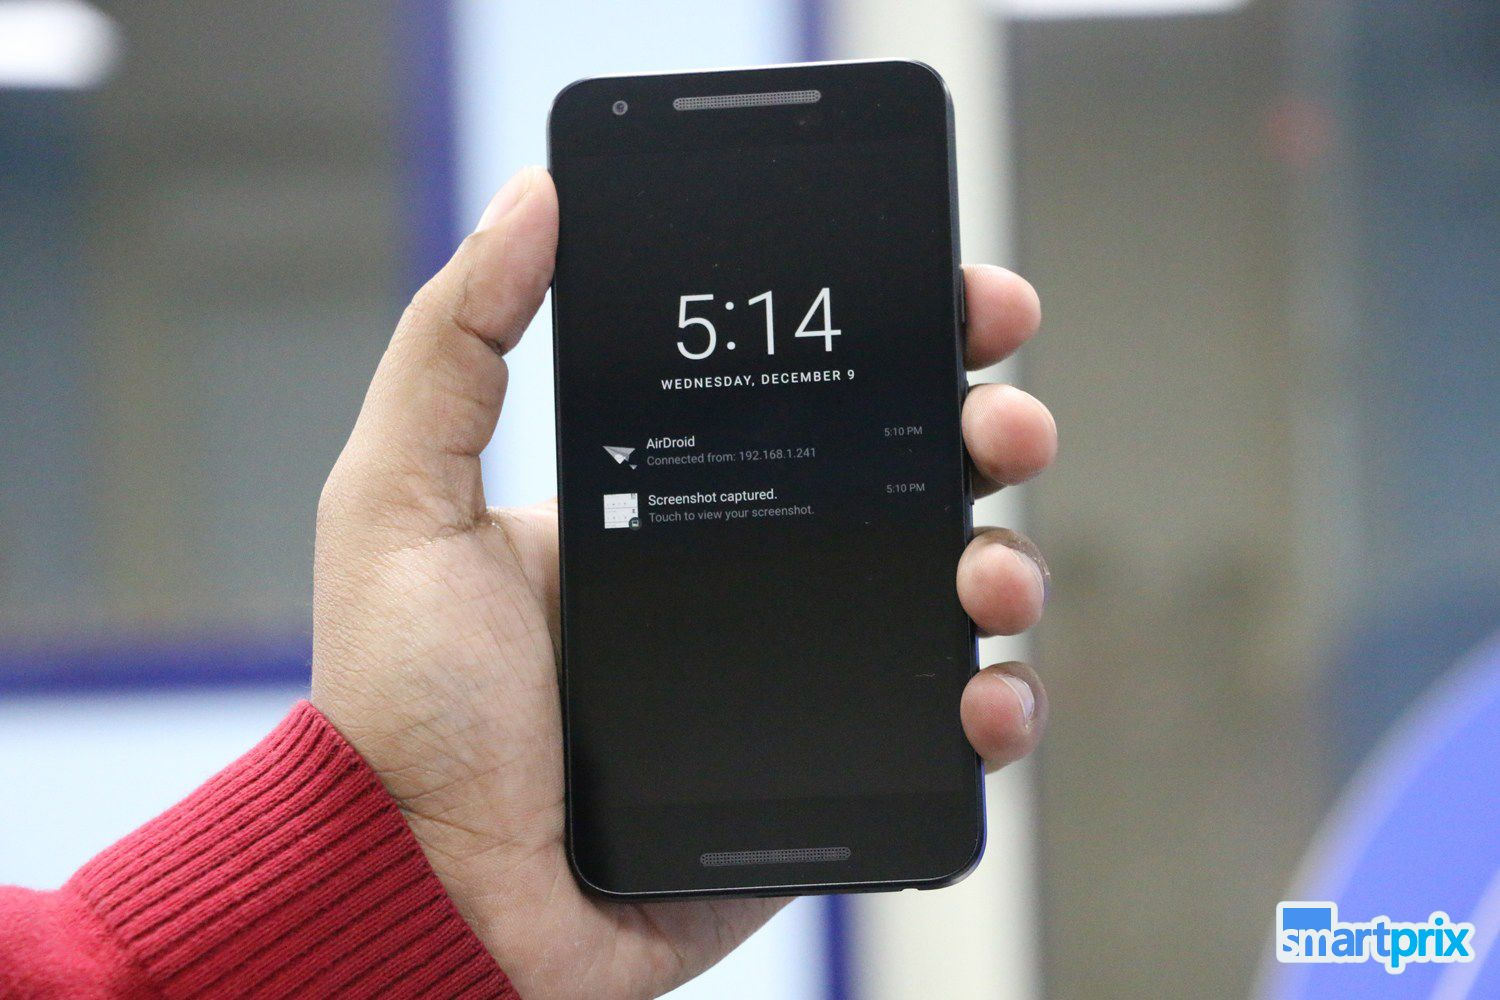 Apps to have always on display like feature on all android